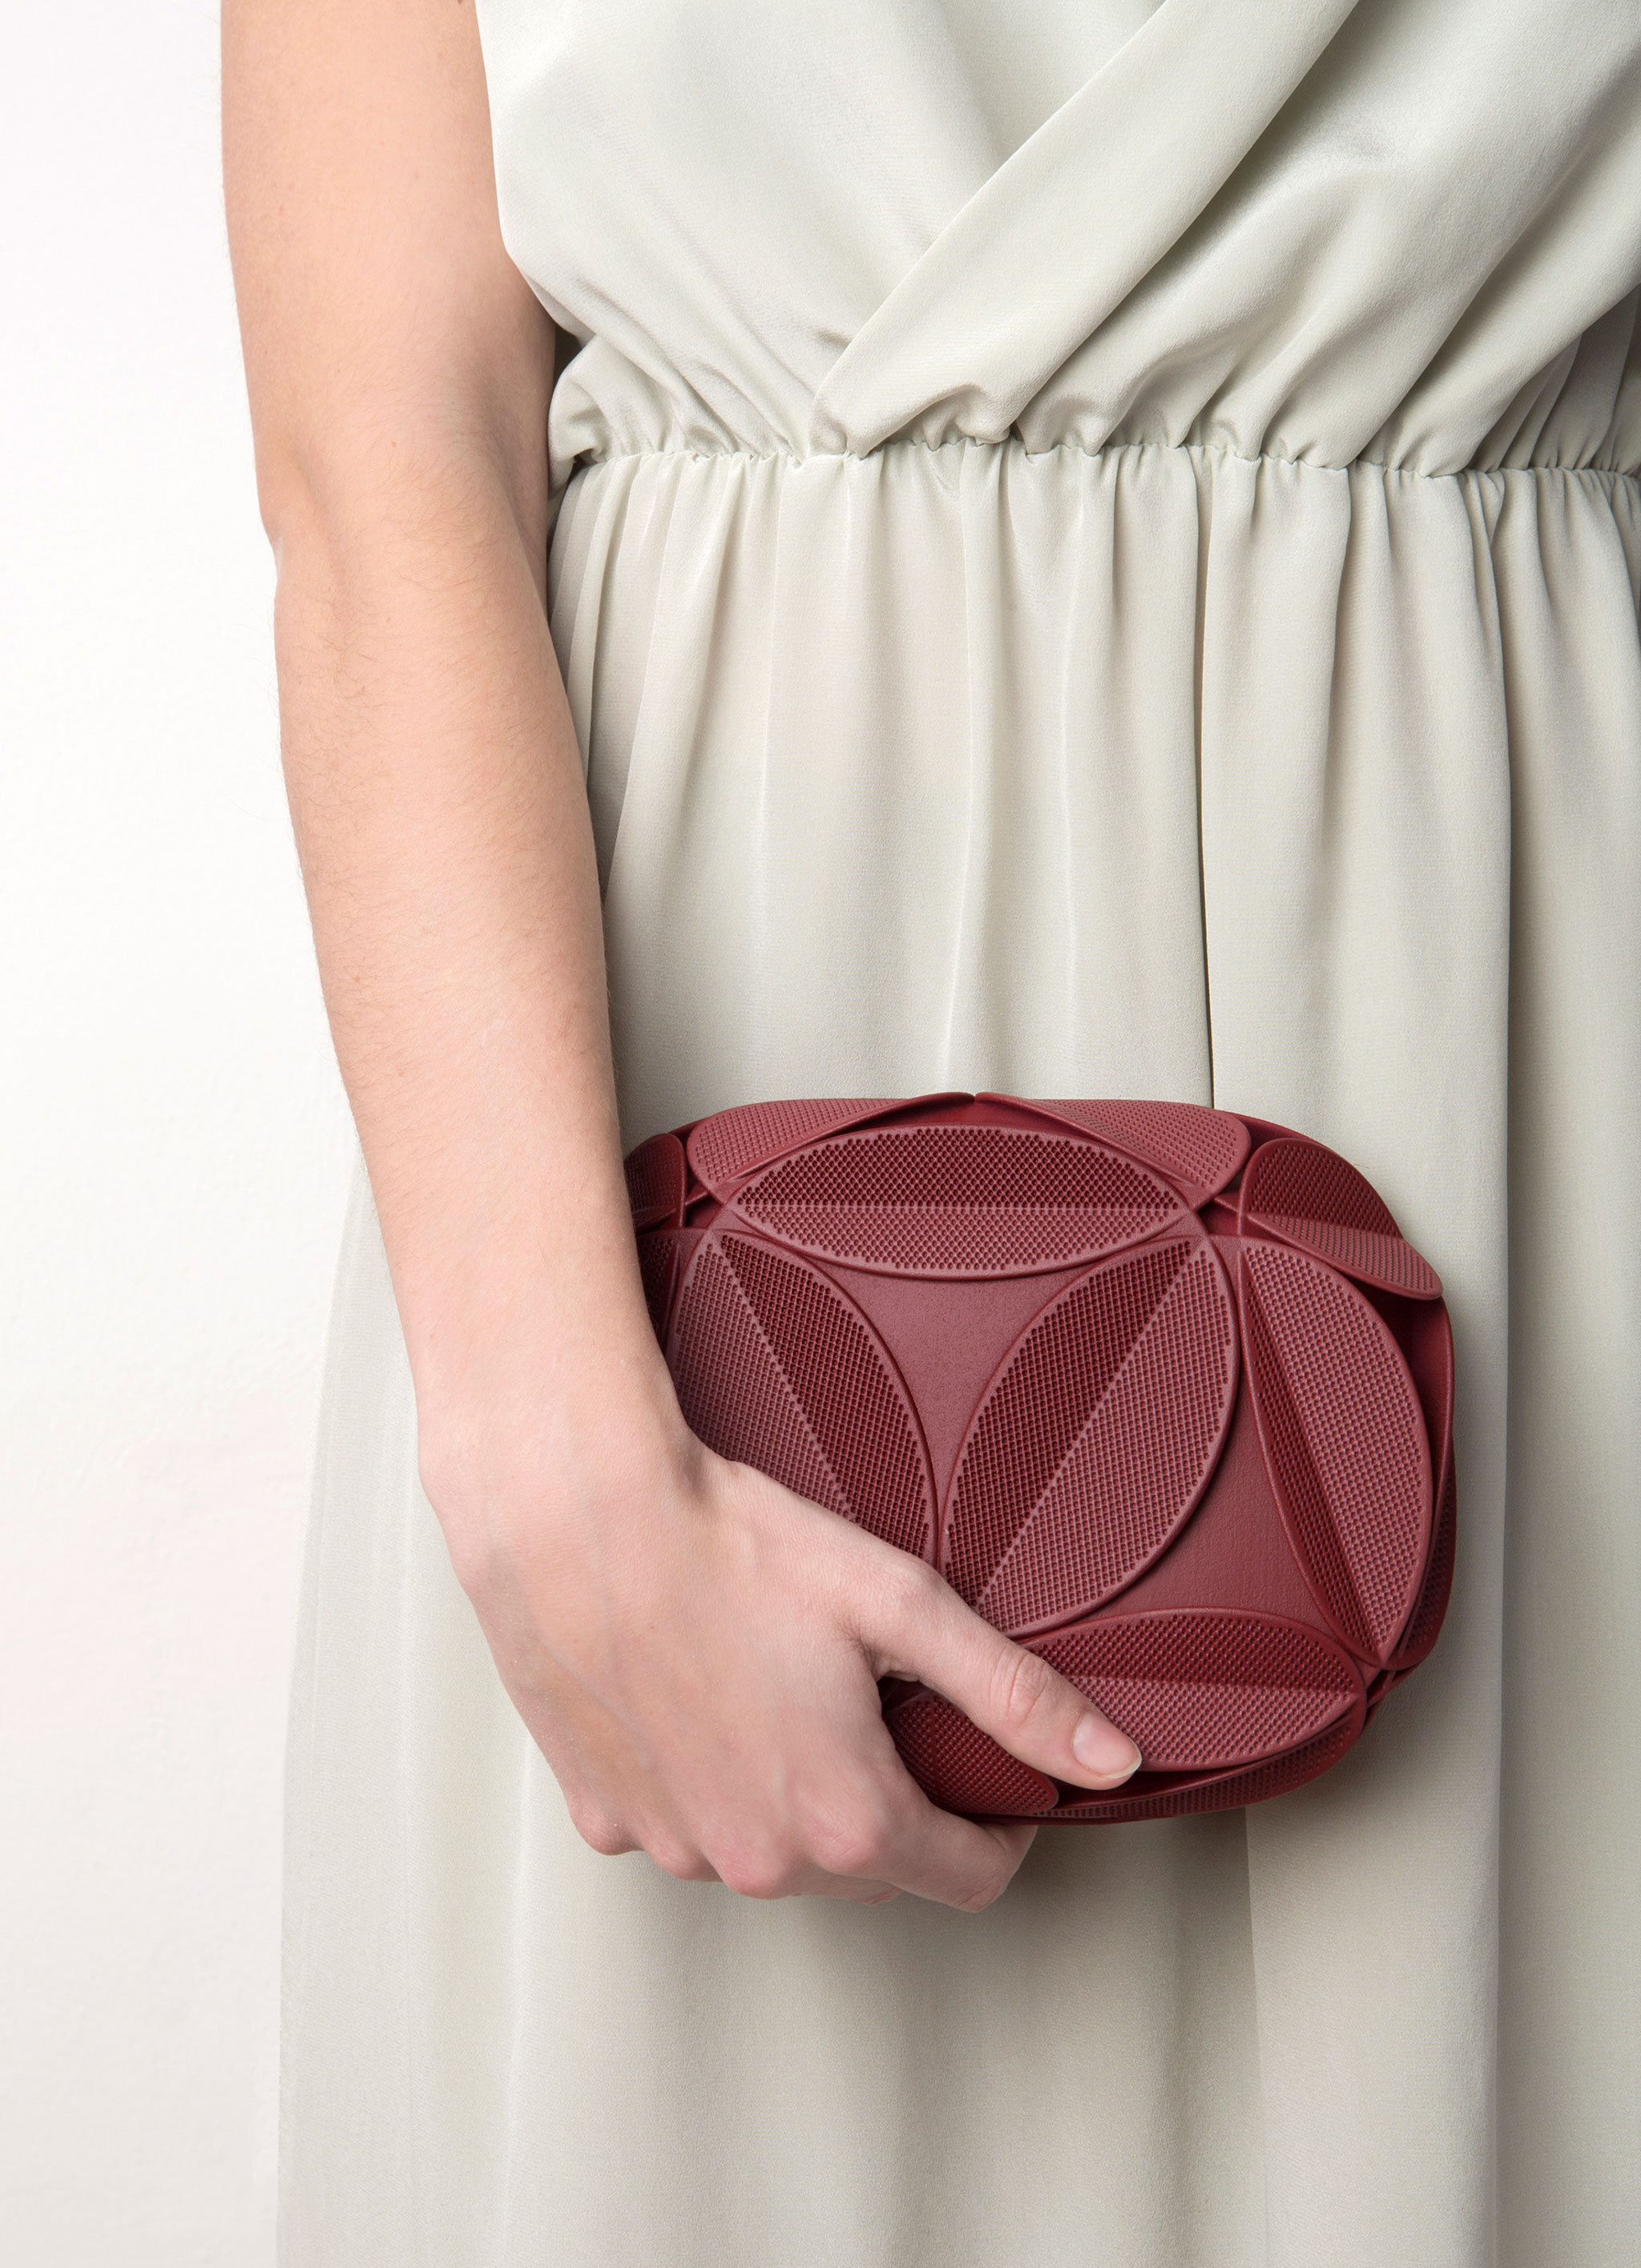 Ivy-3D-Printed-Clutch-Maison-203-09